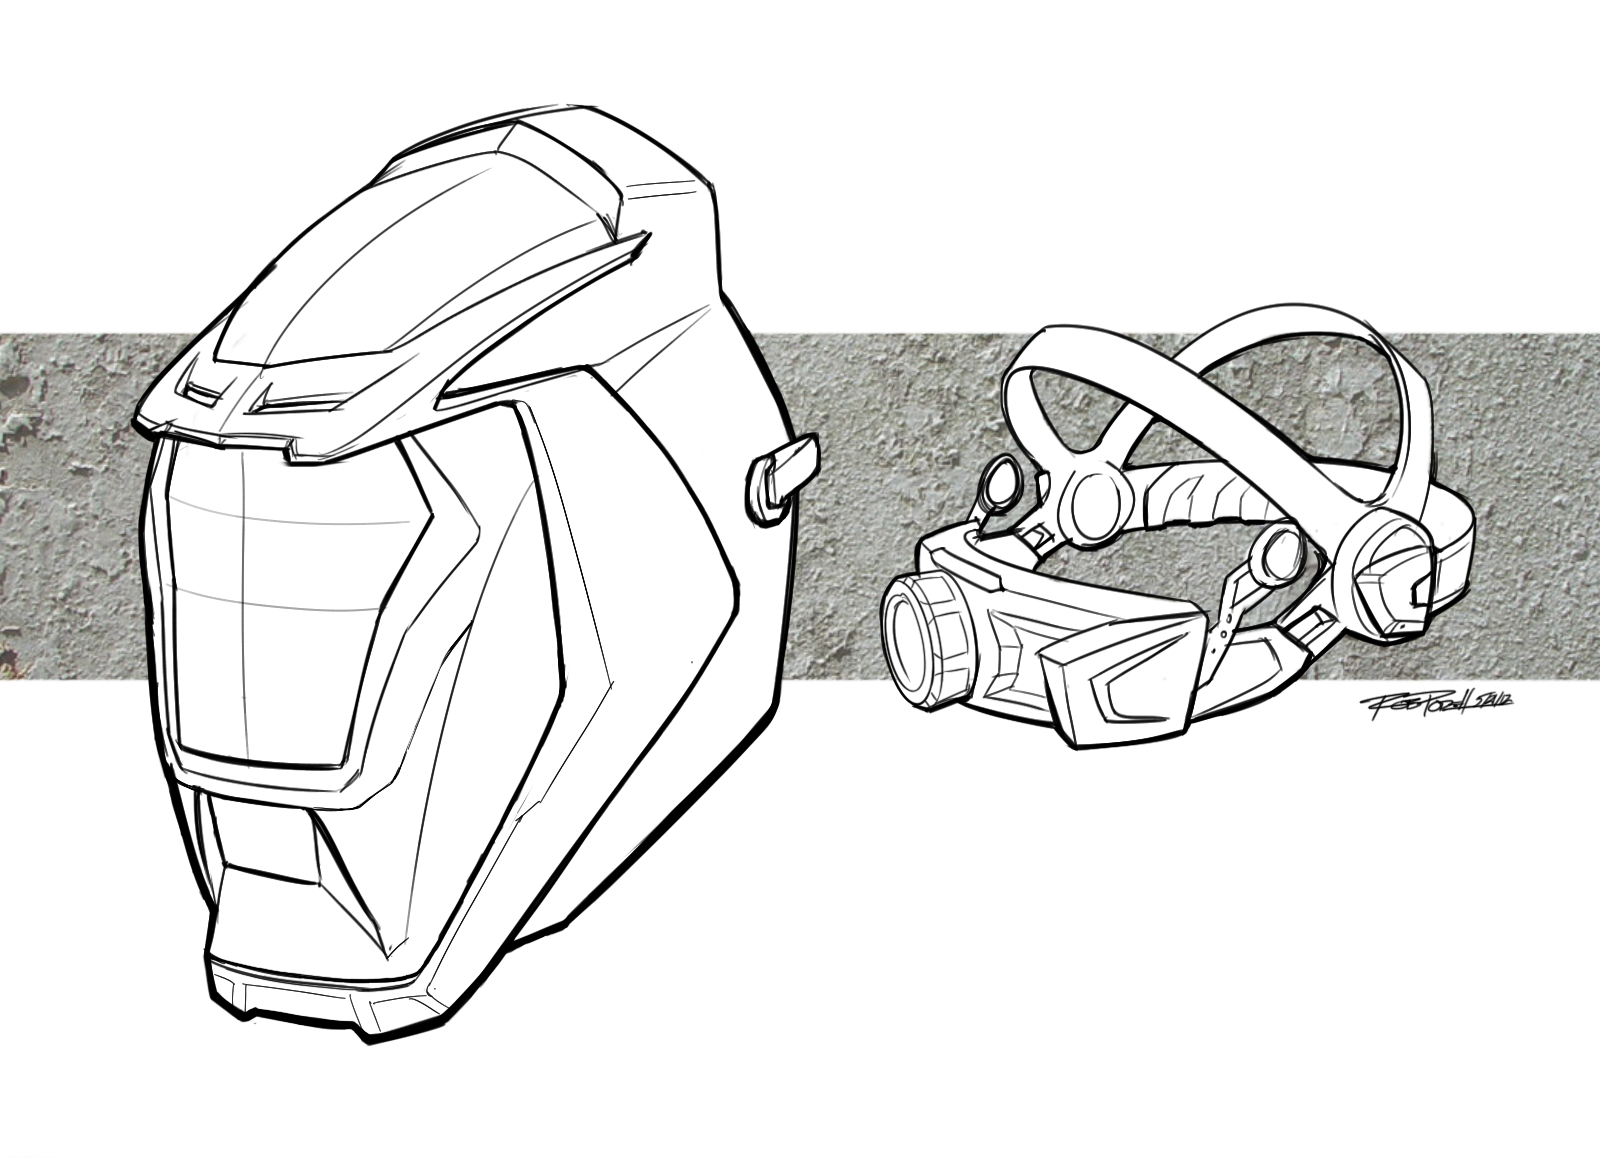 Sketches Amp Renderings By Rob Podell At Coroflot Com